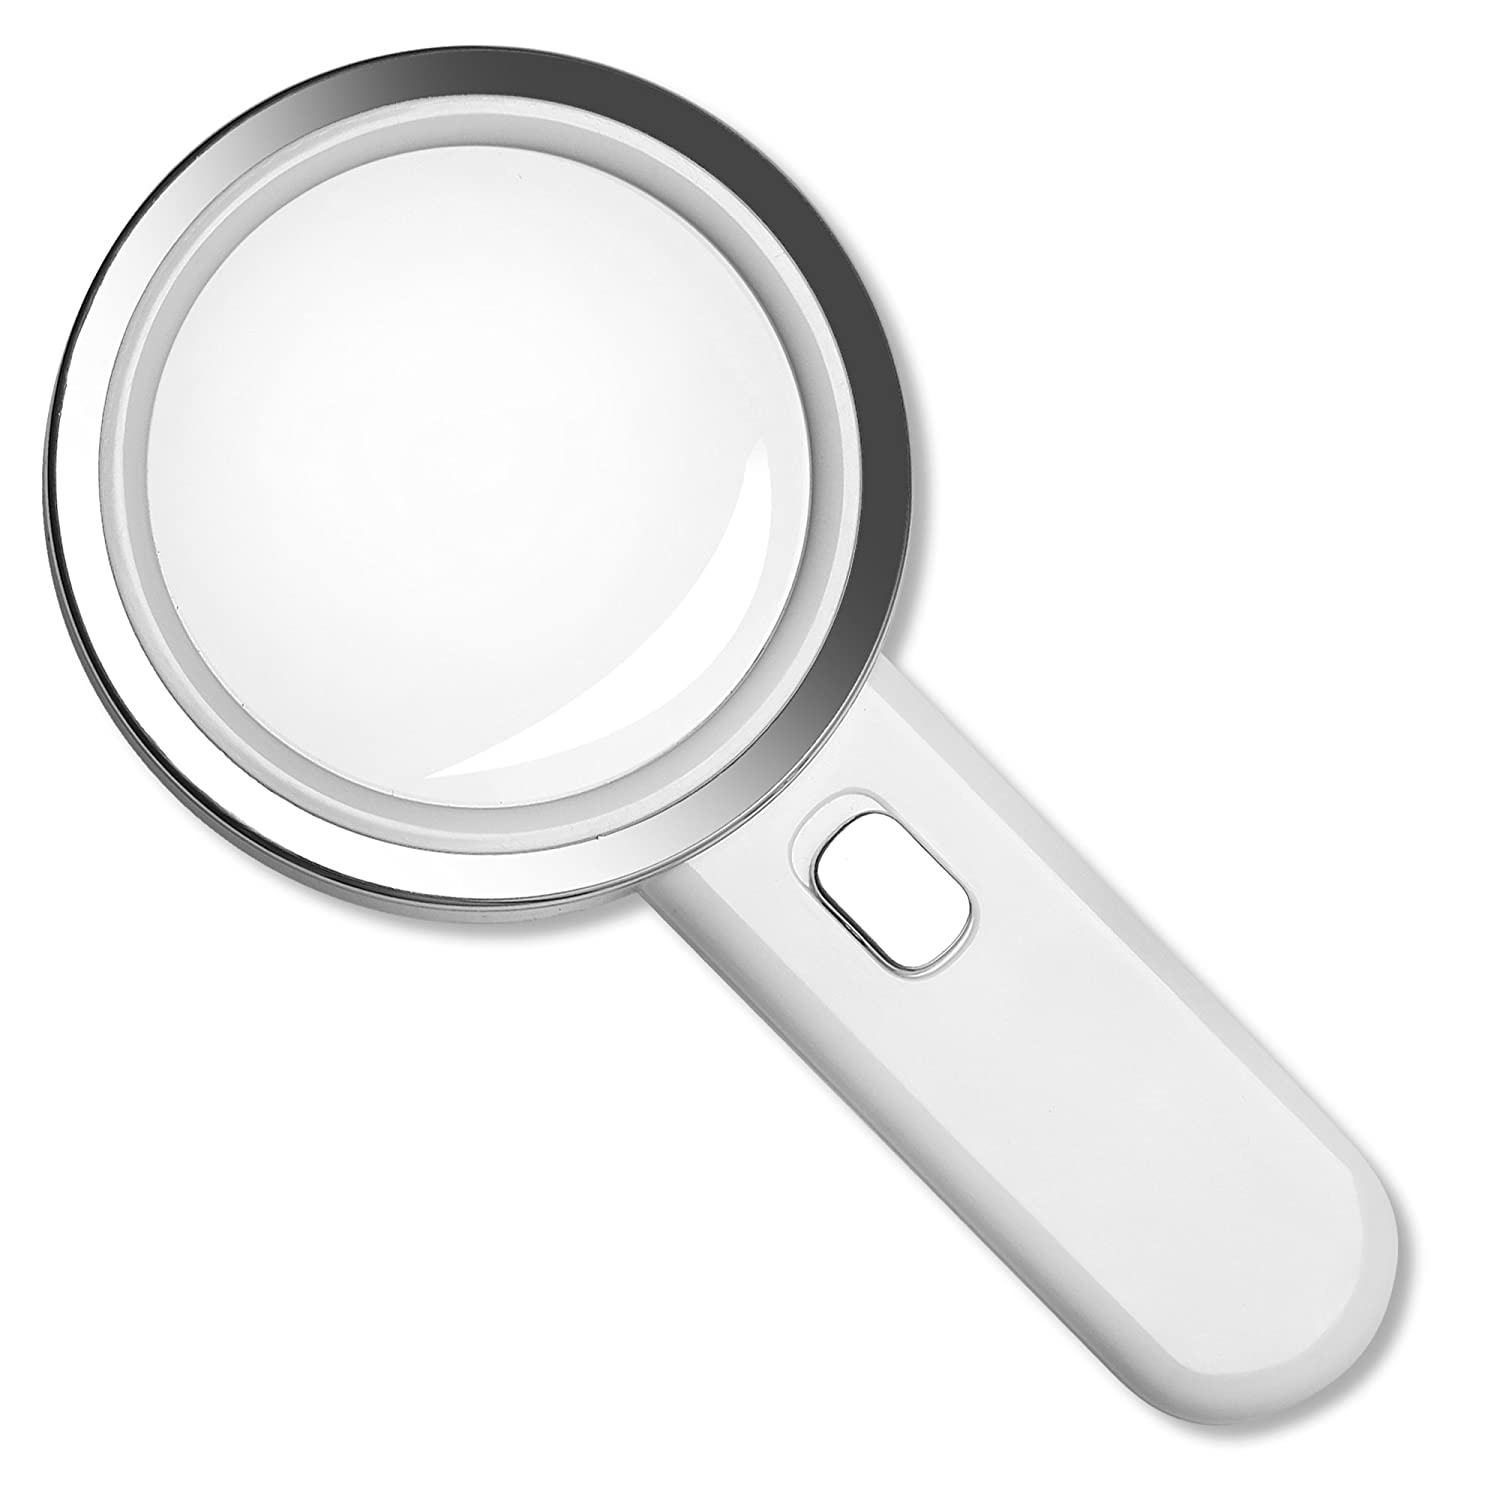 Top 9 Best Kids Magnifying Glass Reviews in 2020 8